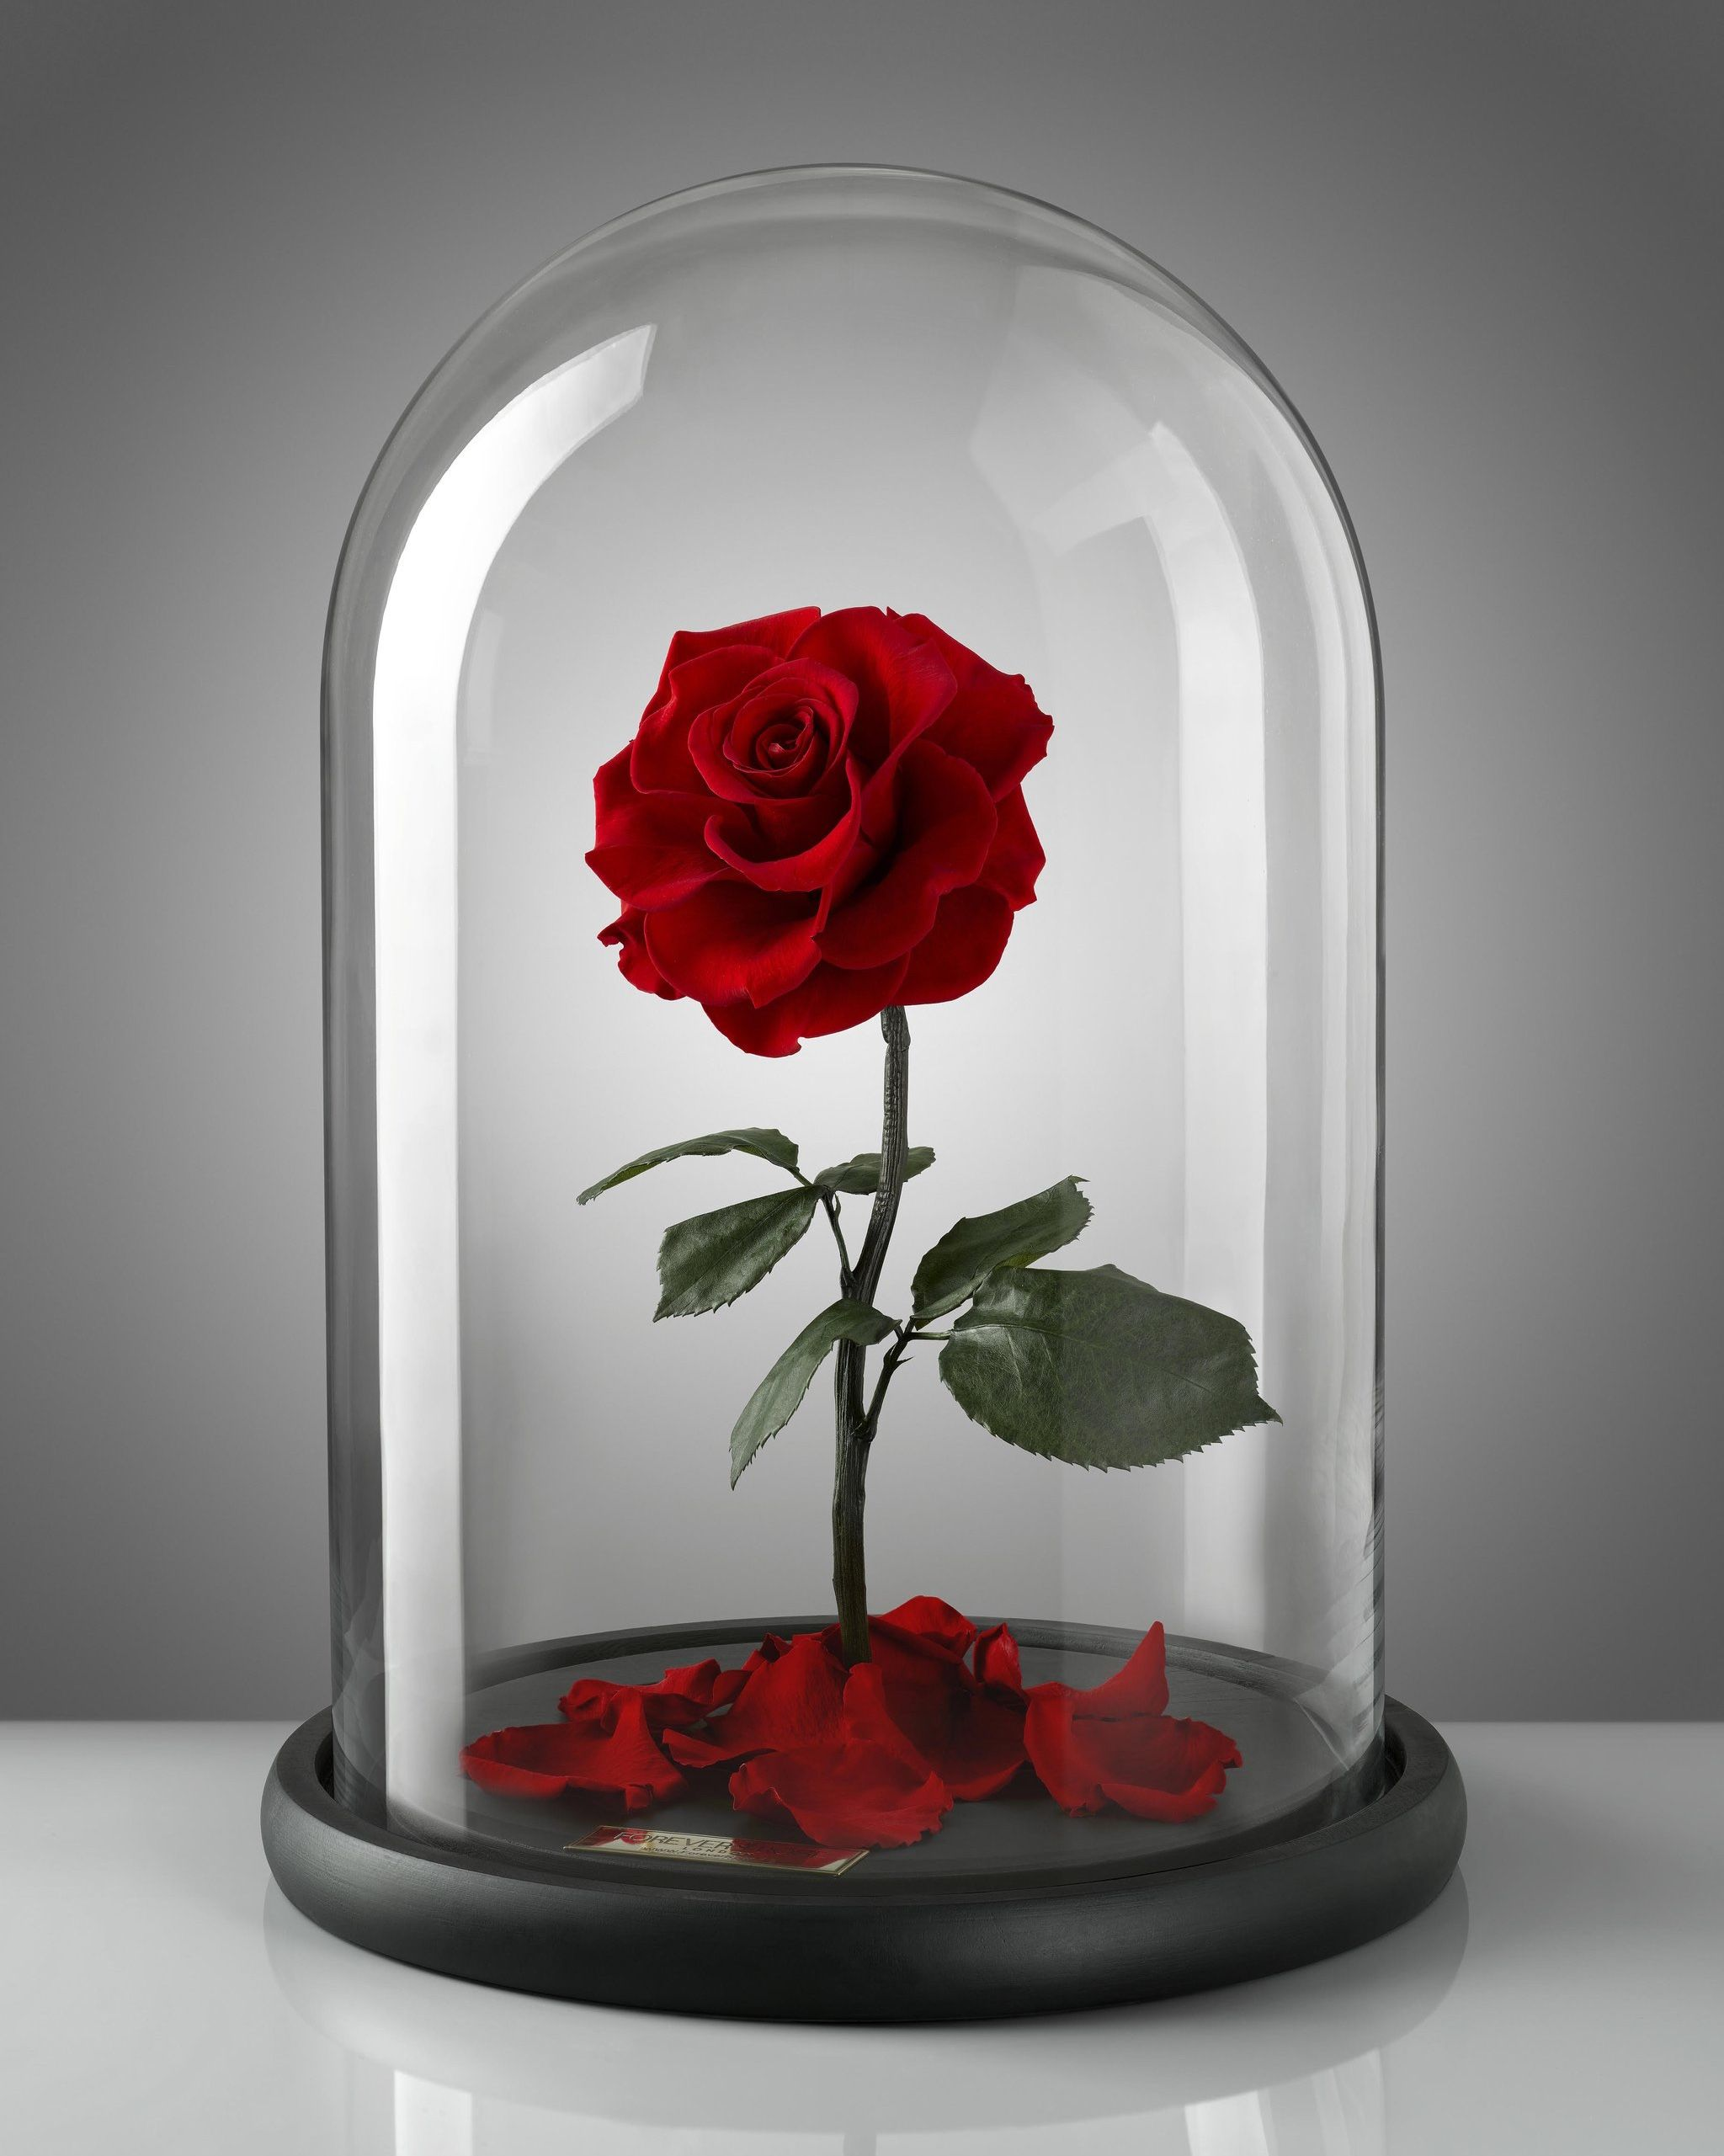 Redbubble enchanted rose cliparts image transparent download Rose Cloche | Her Love for ROSES! in 2019 | Forever rose ... image transparent download